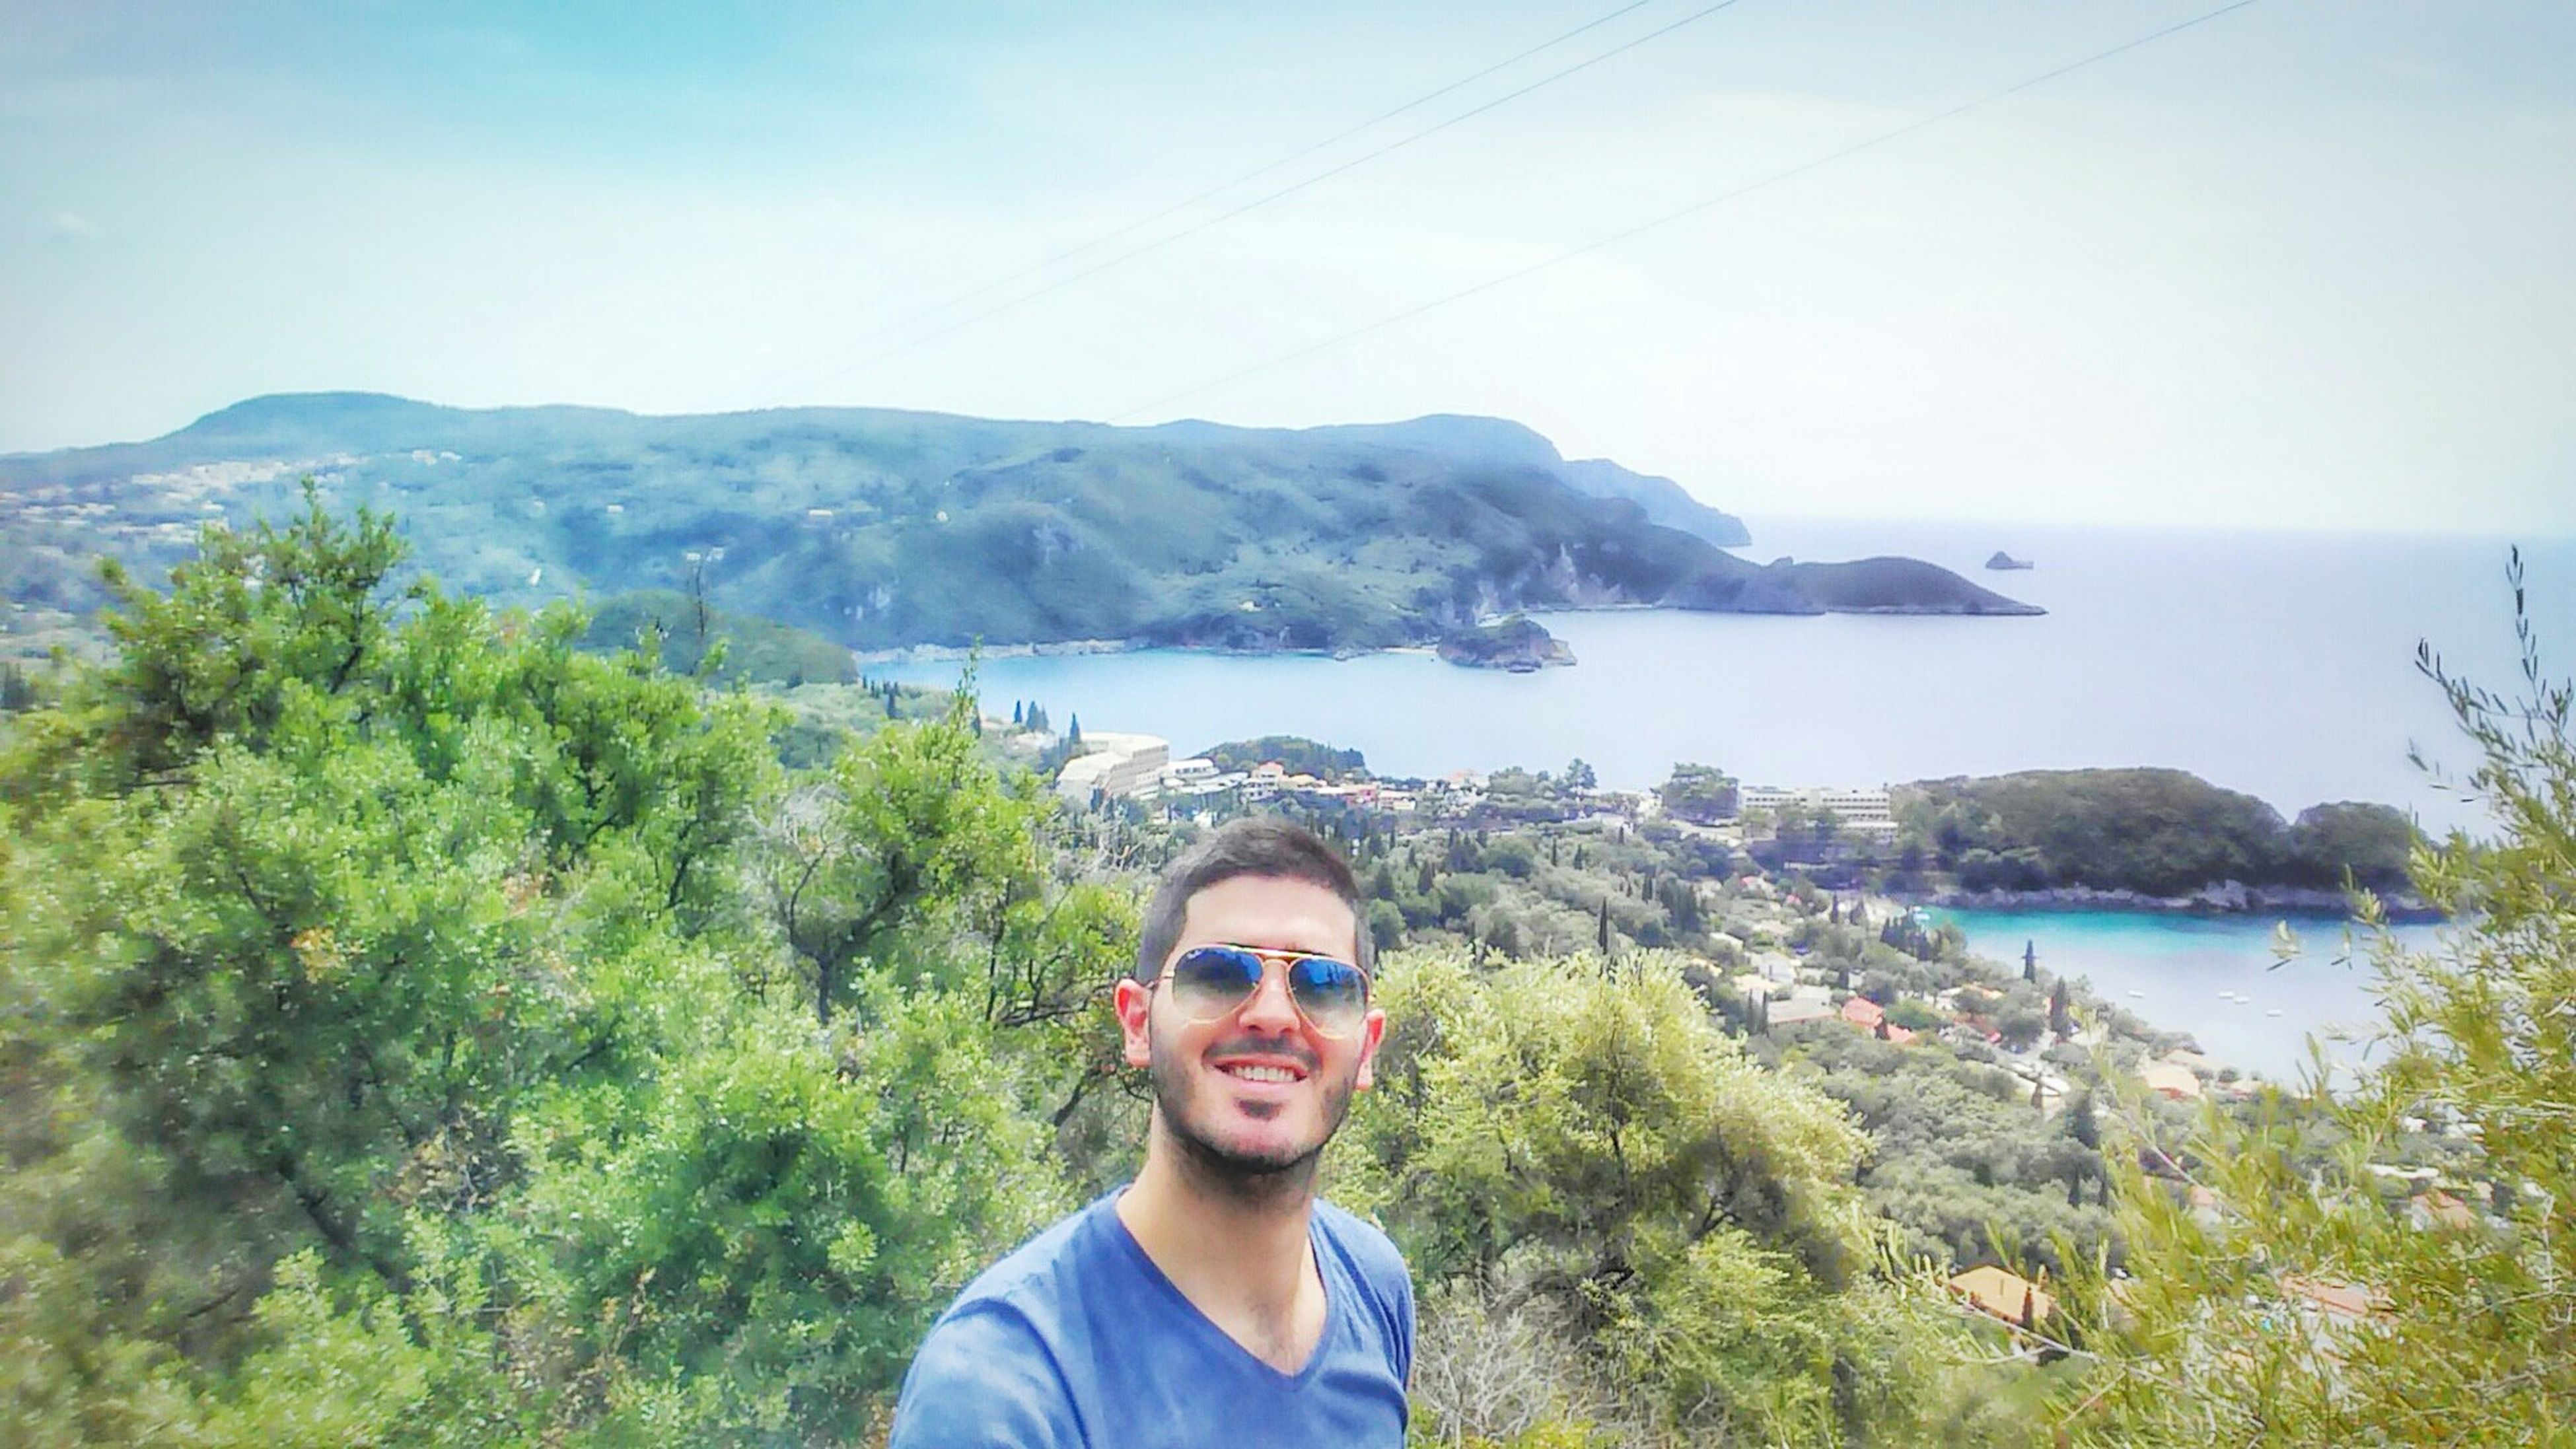 Self Portrait Around The World Holiday View Relaxing Beautiful Surroundings Summer Views Nature Travel Lanscape EyeEm Best Shots